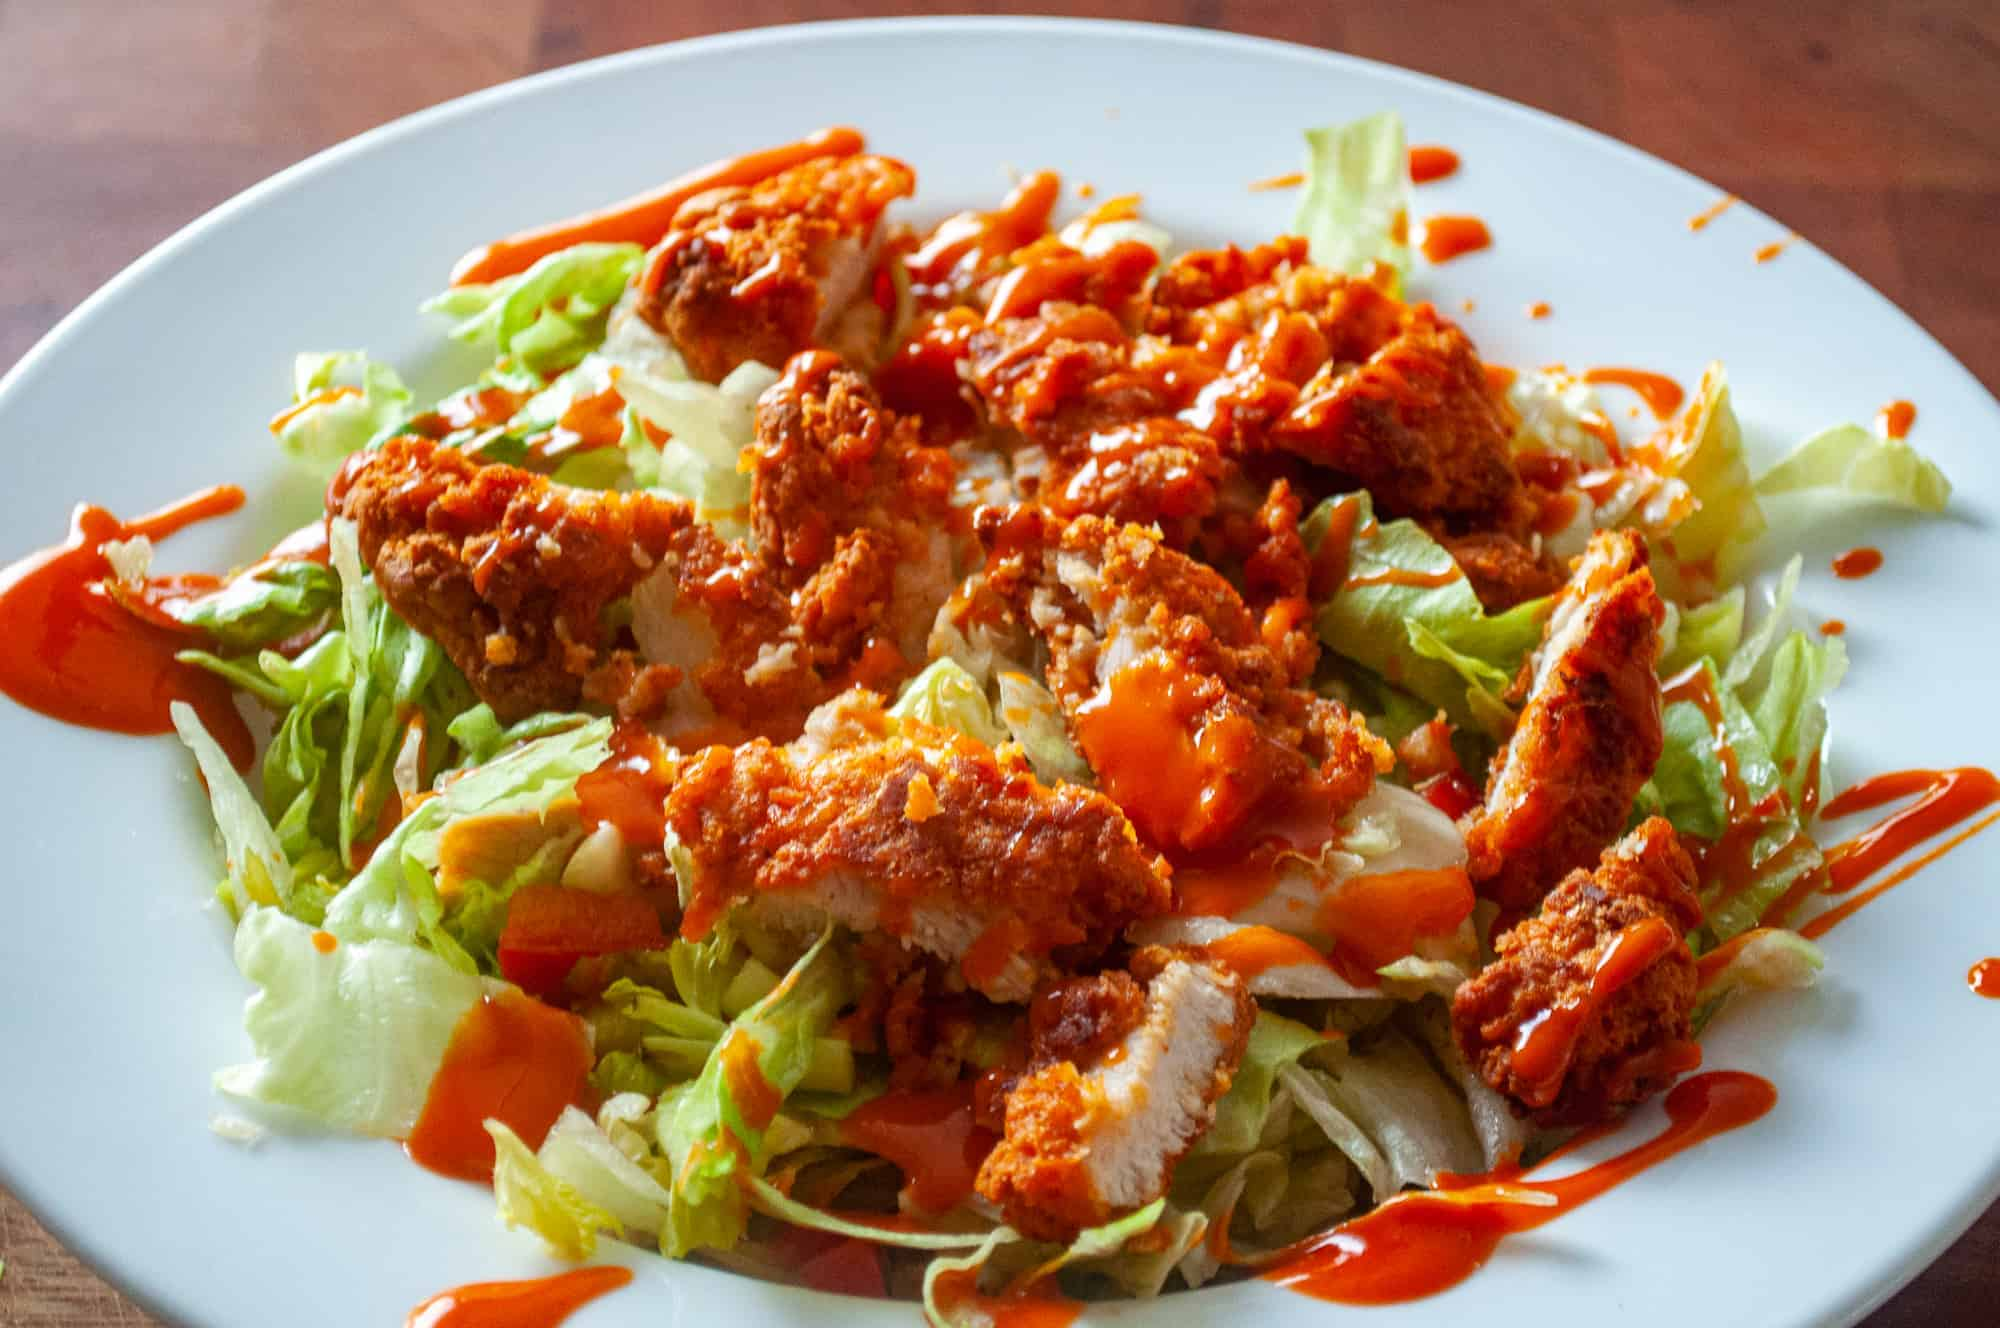 Buffalo chicken on a salad.